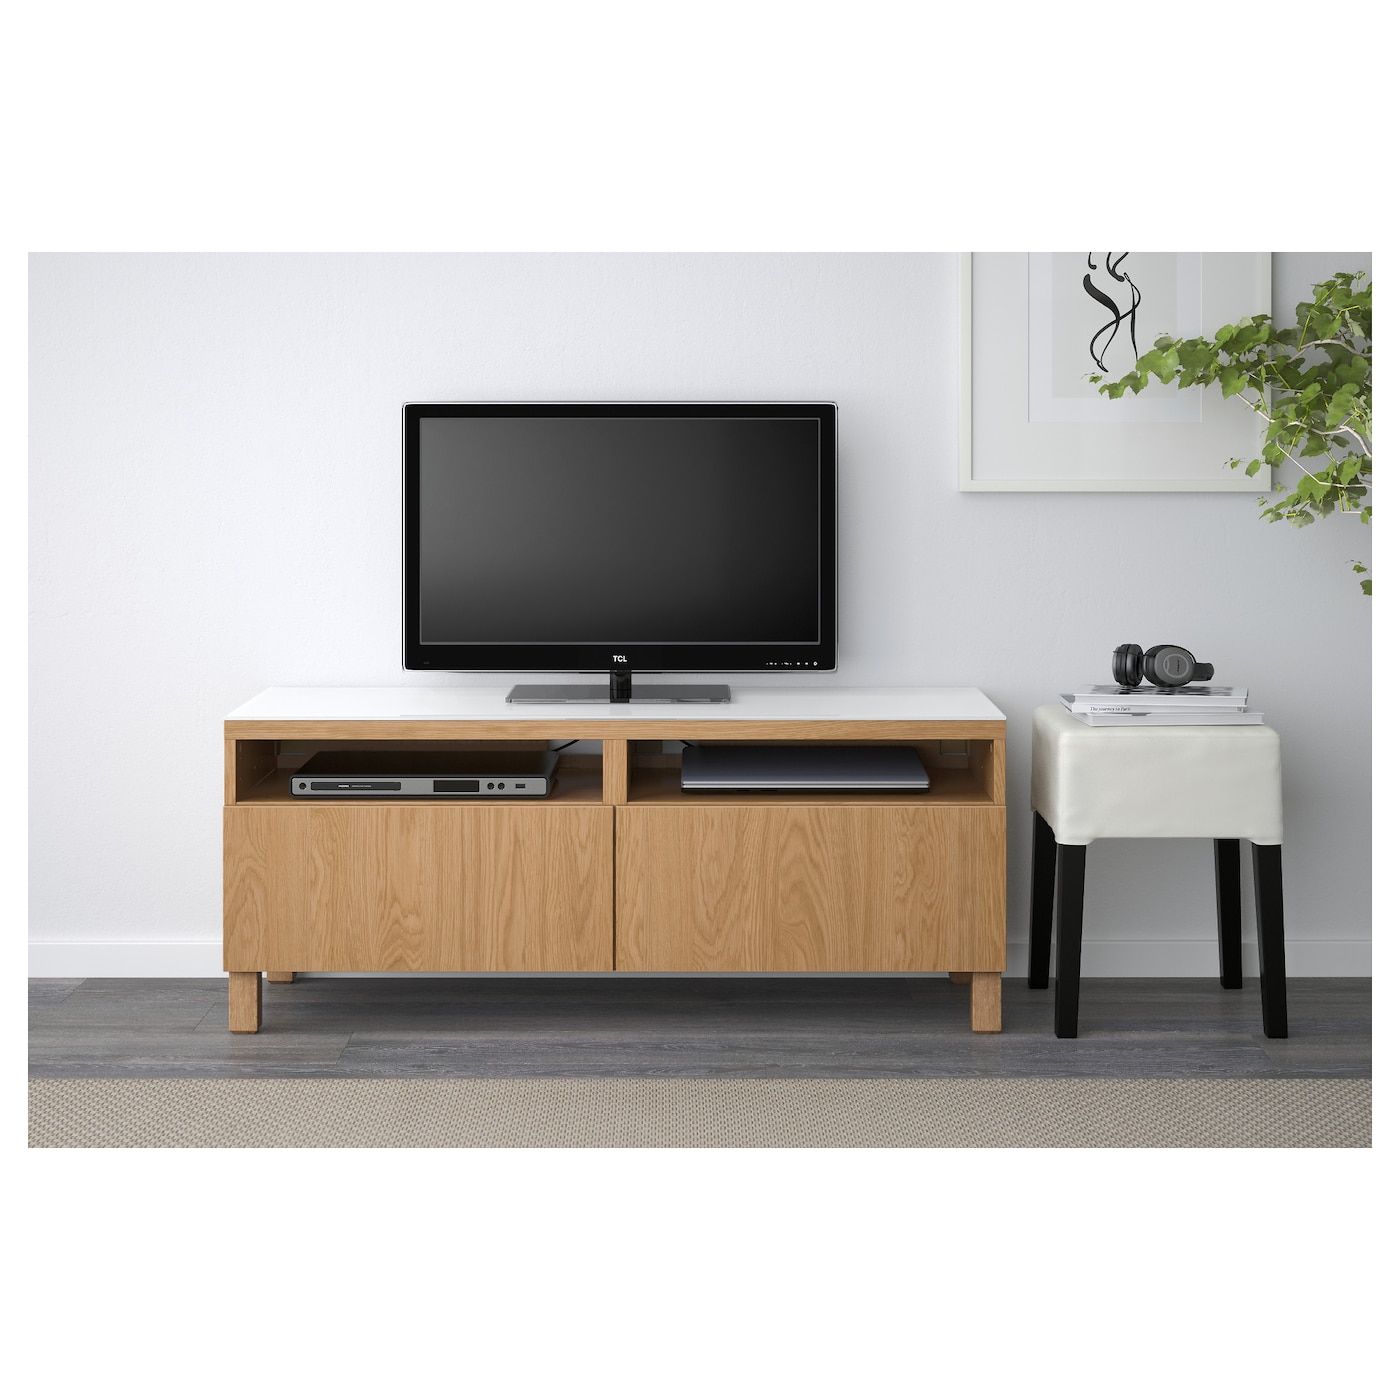 IKEA BESTÅ TV bench with drawers